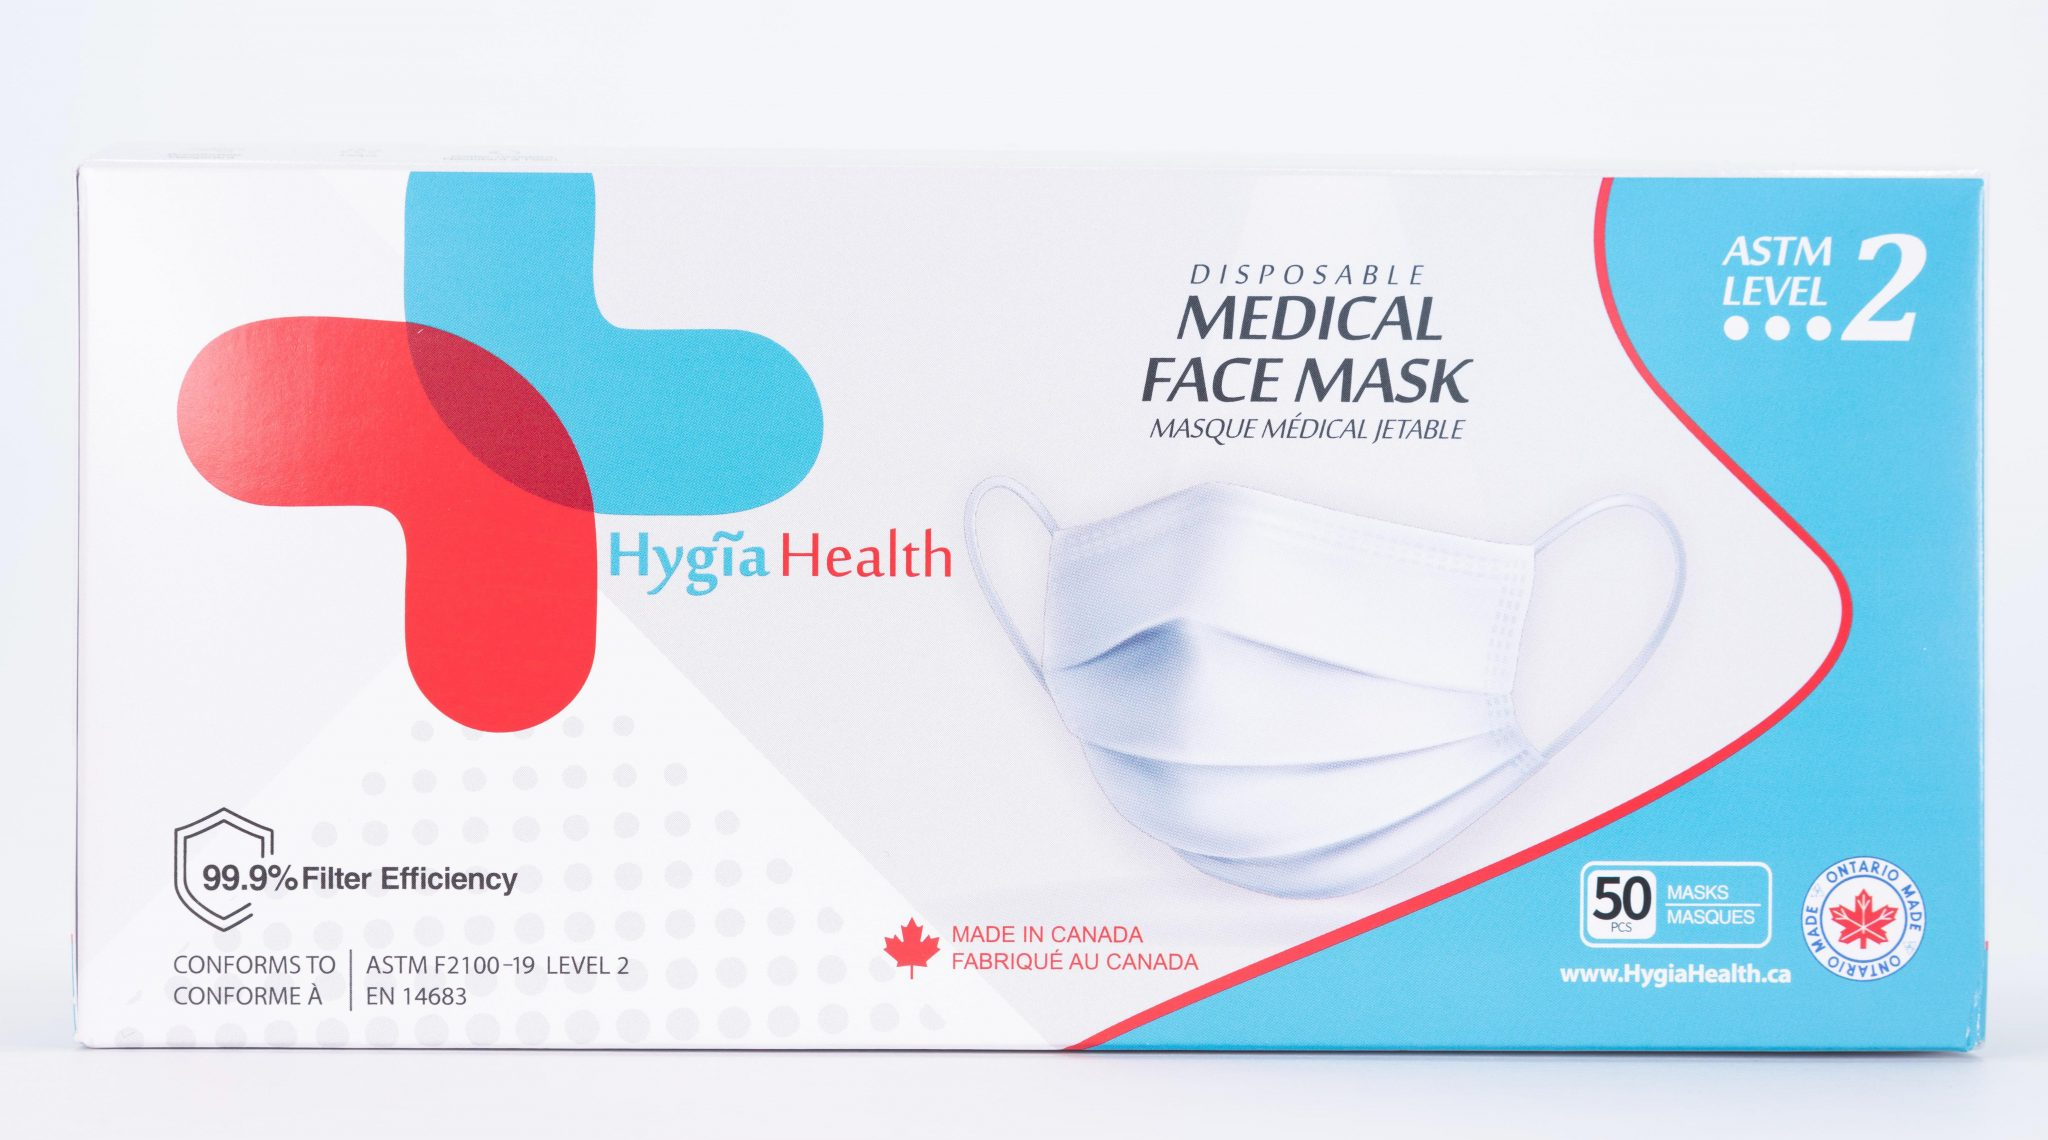 Hygia Health face mask pack